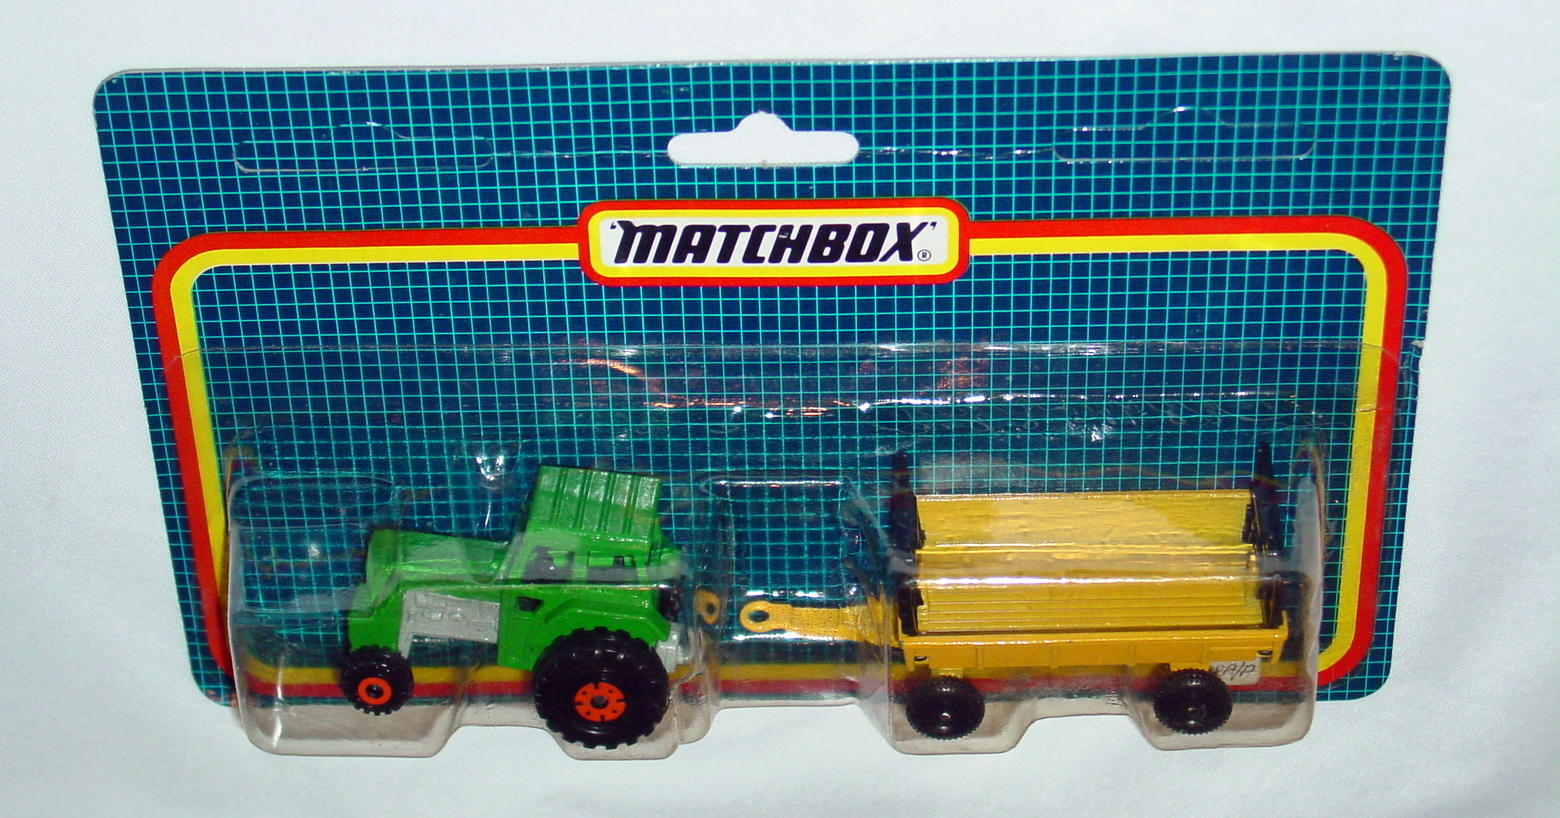 Twin Pack 108 A 3 - green 46C16 tractor yellow Hay trailer C9.5blue trailerscard